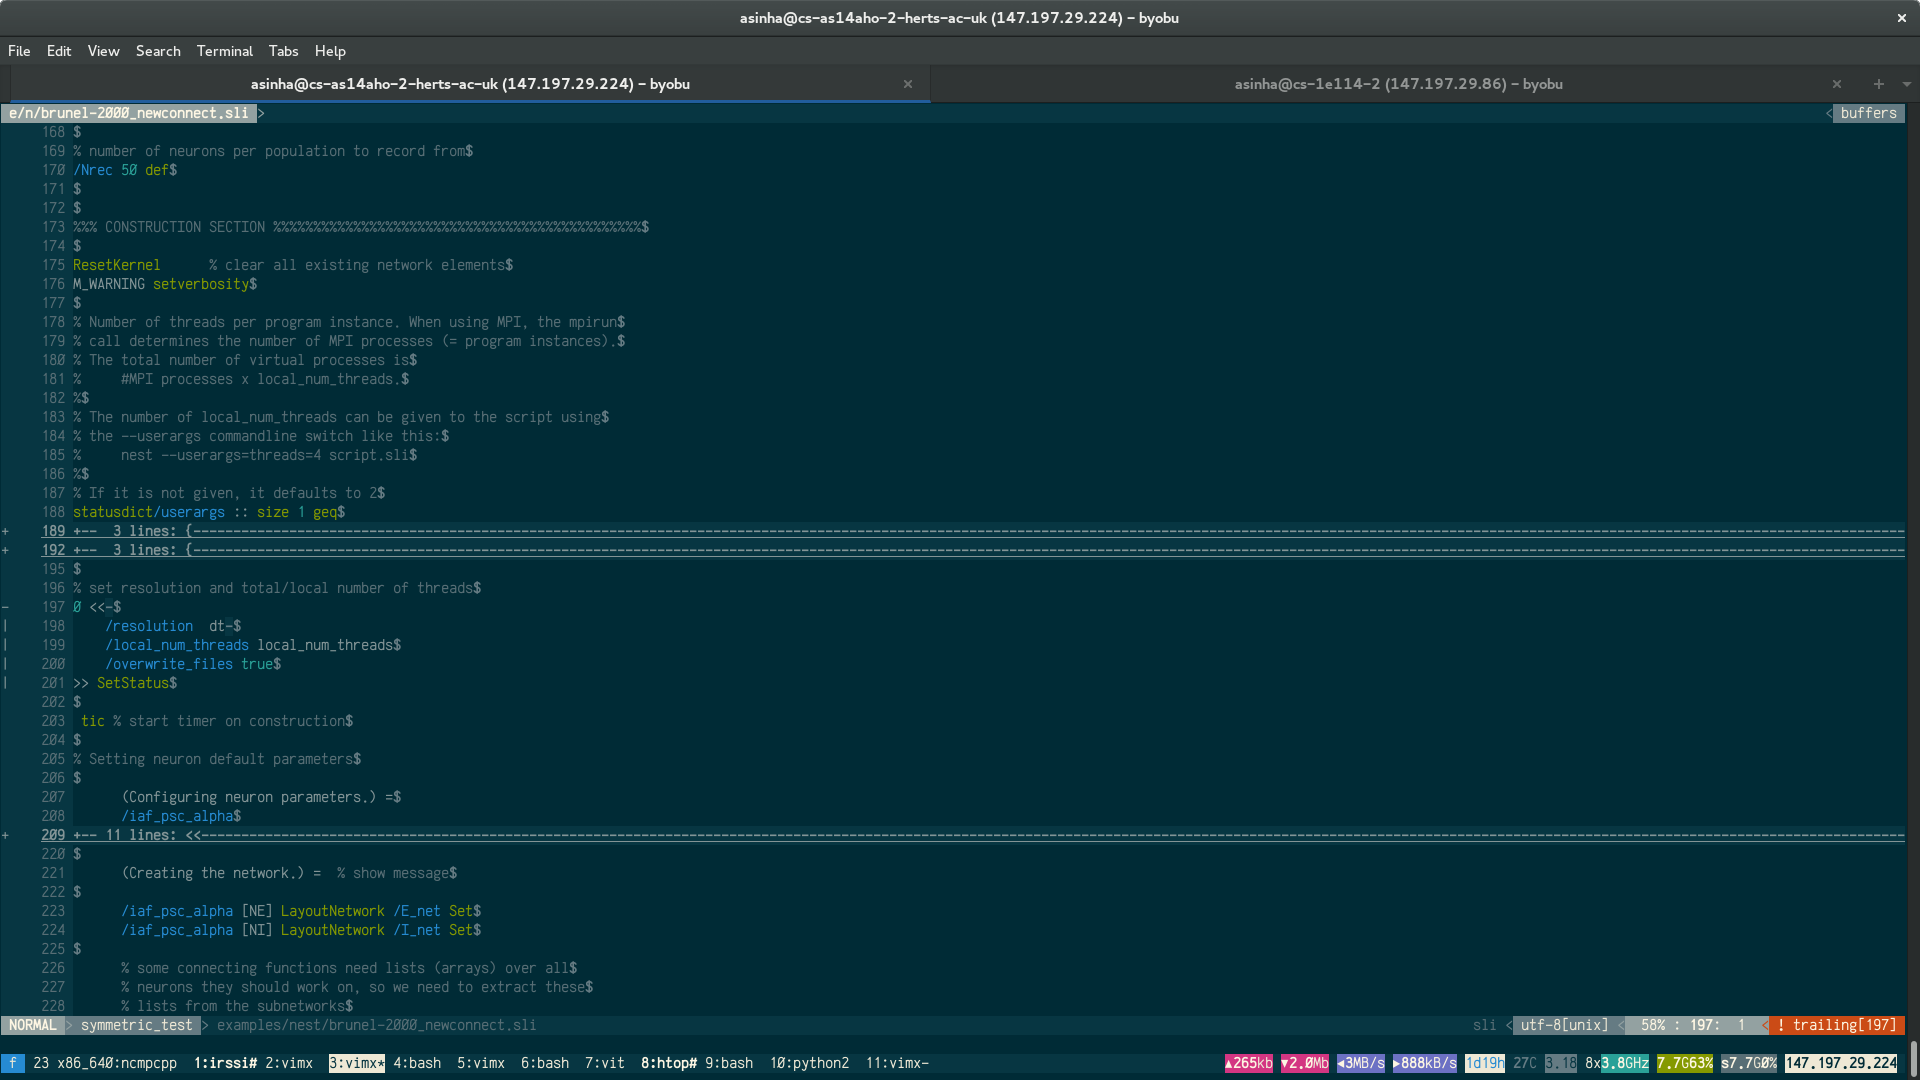 Screenshot showing SLI syntax highlighting in Vim